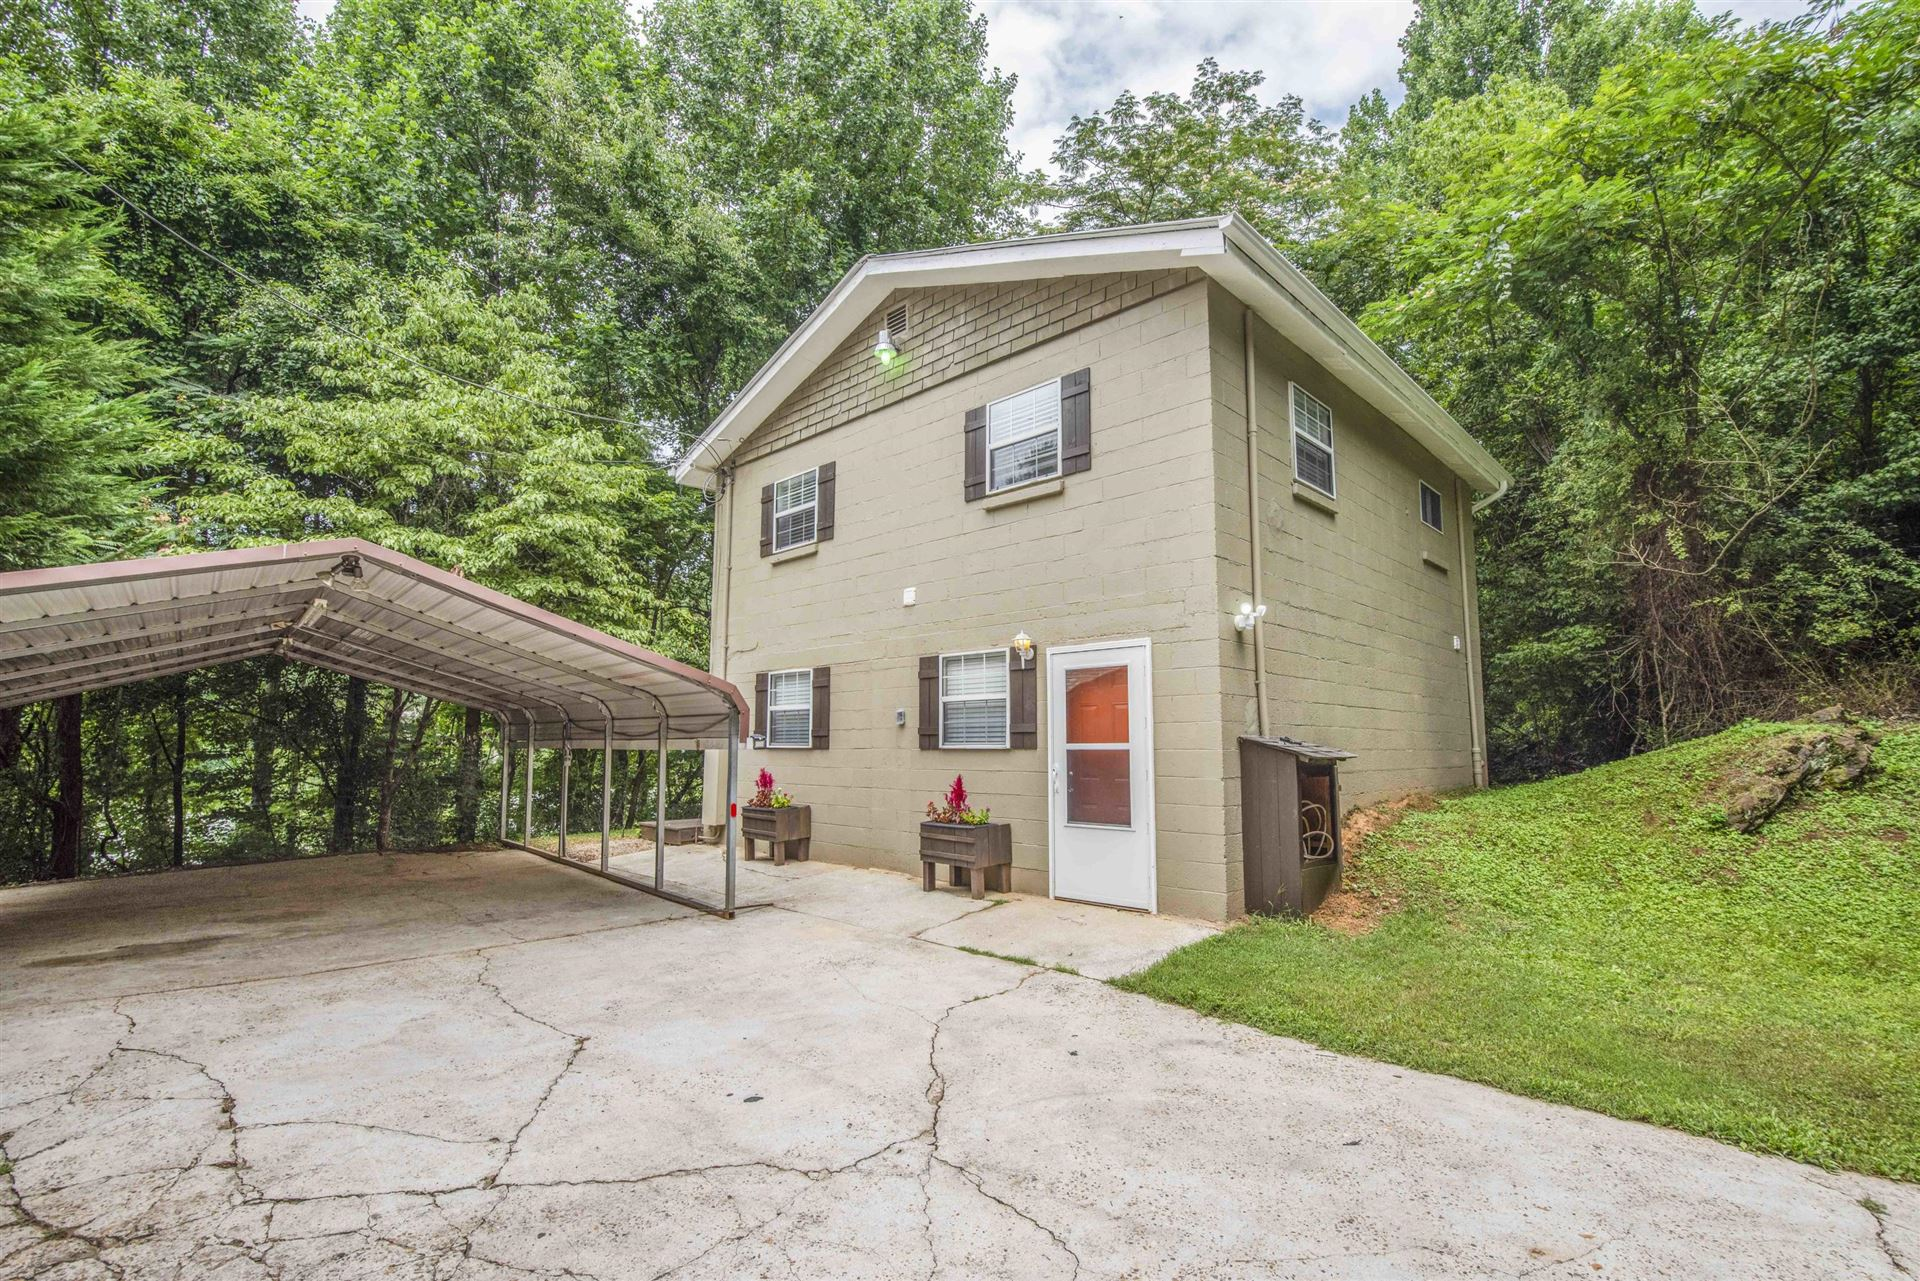 Photo of 4836 W Martin Mill Pike, Knoxville, TN 37920 (MLS # 1161152)